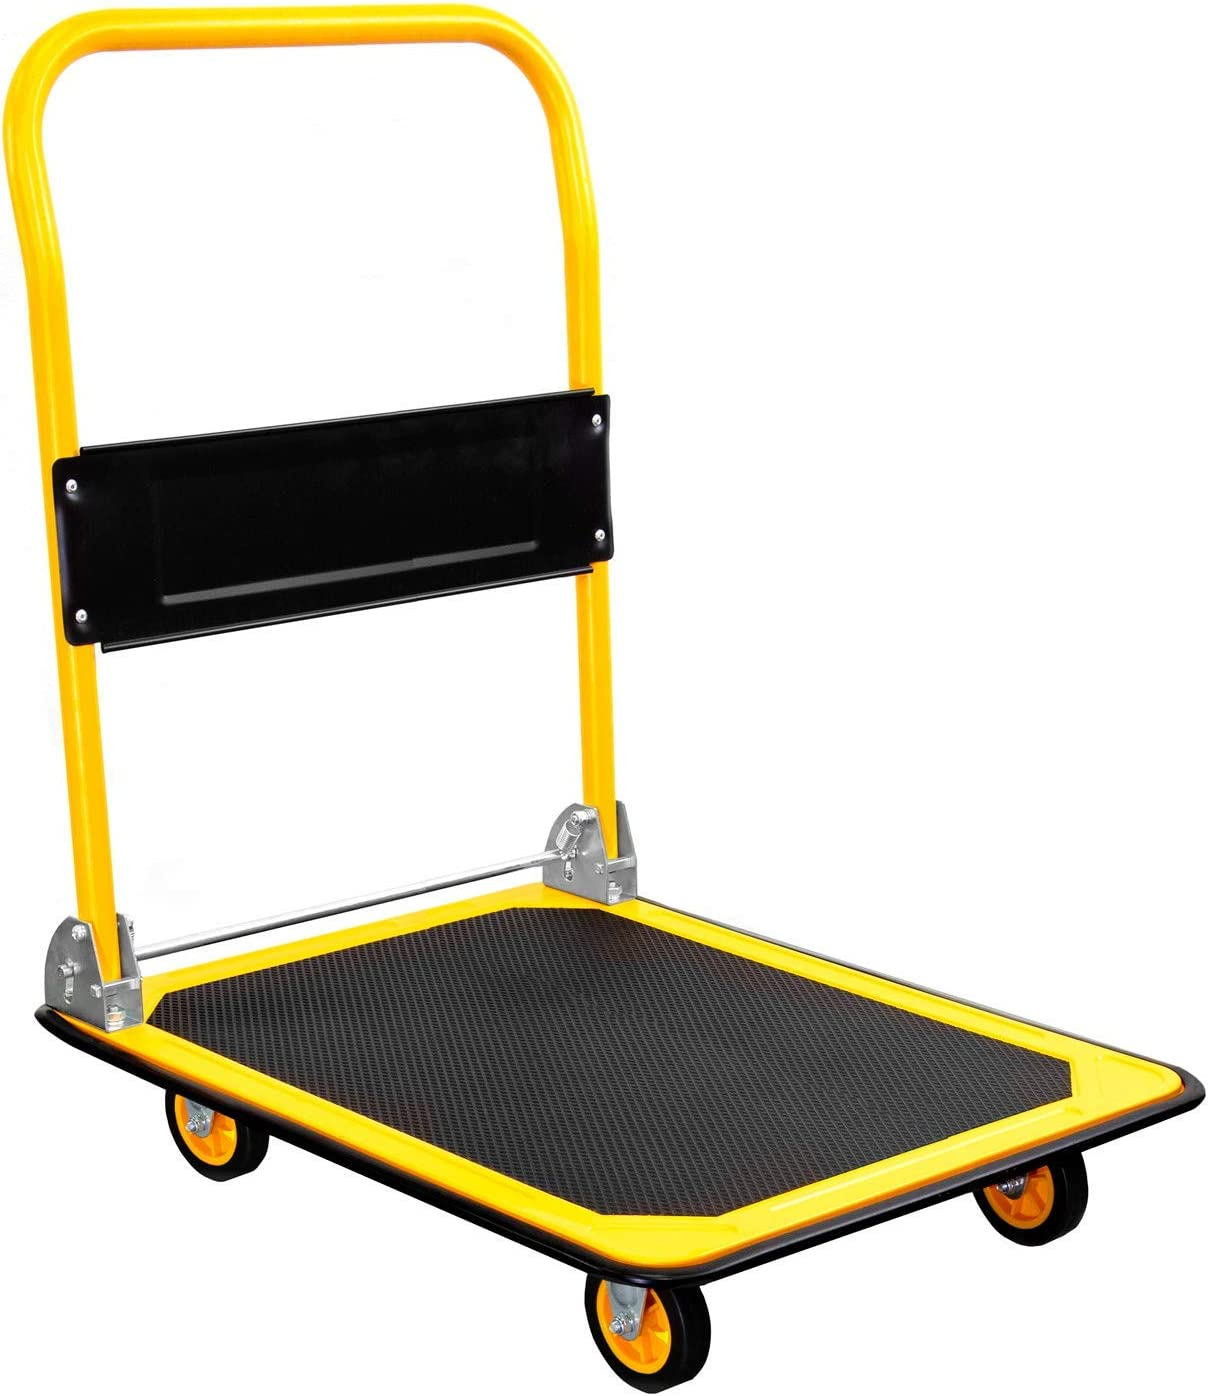 MOUNT-IT! Platform Truck [660lb Weight Capacity] Heavy Duty Foldable Flatbed with Swivel Wheels, Rolling Trolley Cart, Foldable, Flat, Push Cart Dolly (YELLOW)